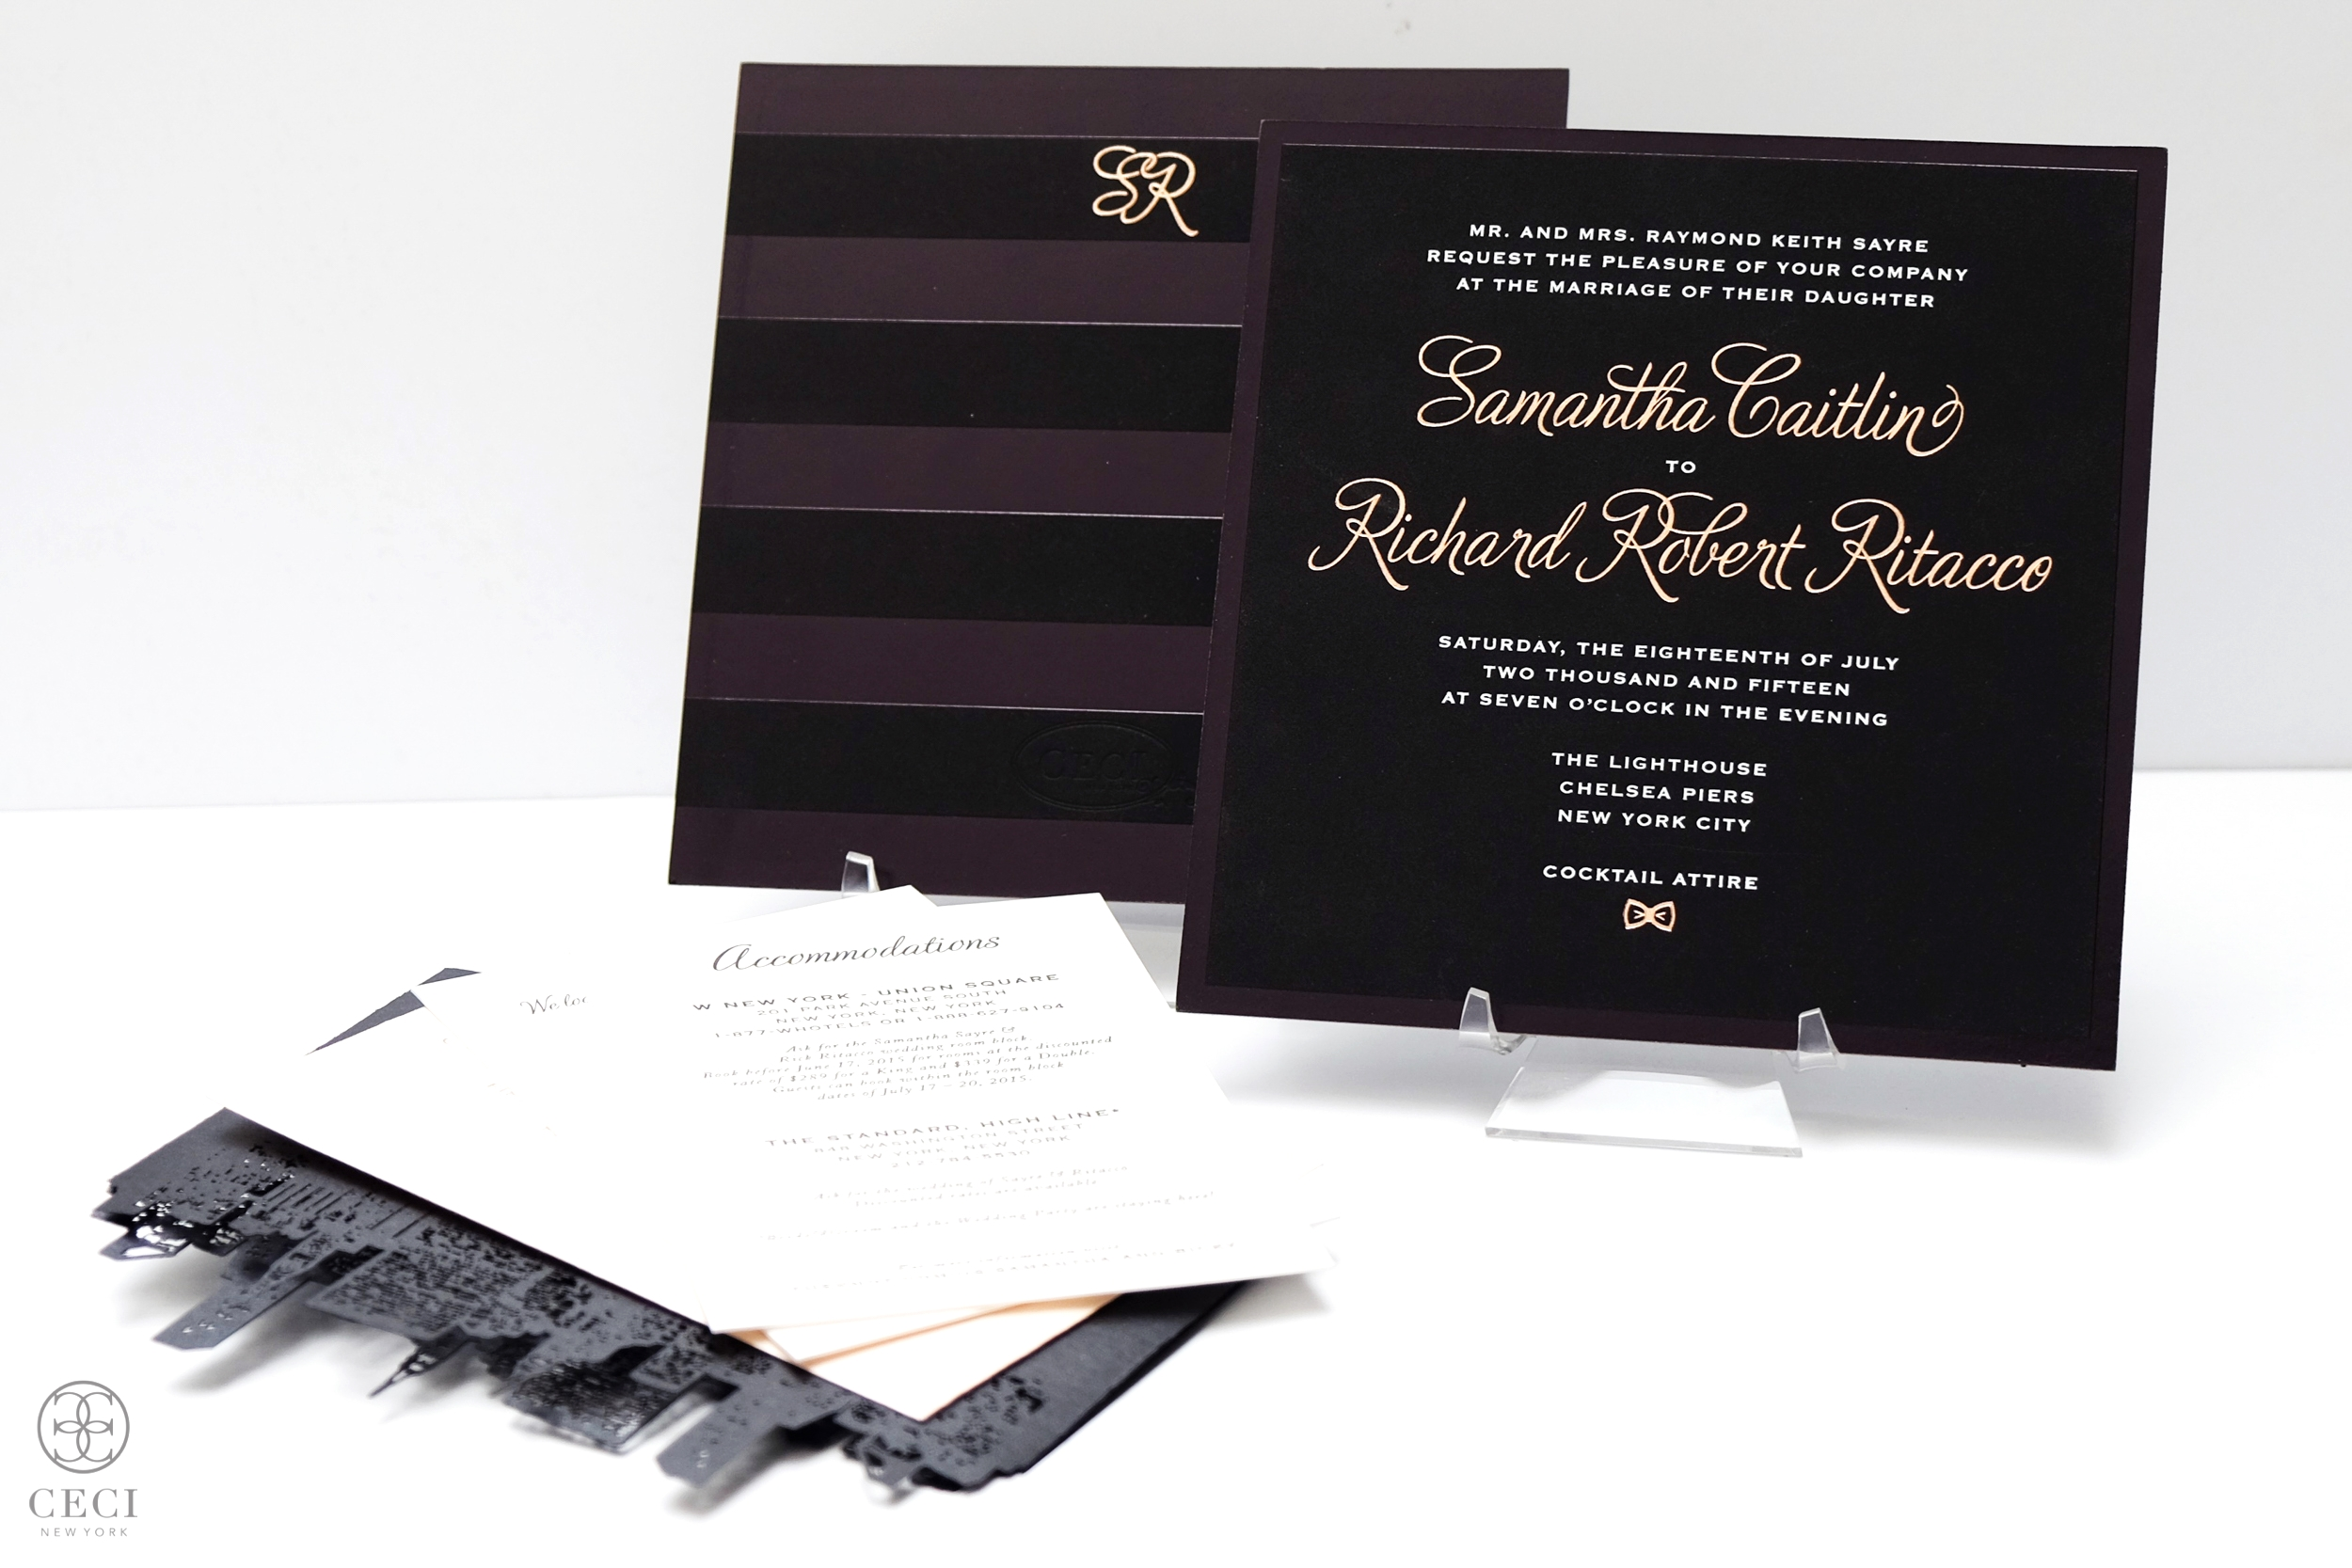 Ceci_New_York_Custom_Luxury_Wedding_LaserCut_Stationery_Personalized_Couture_Foil_Stamping_Black_Chic_-12.jpg